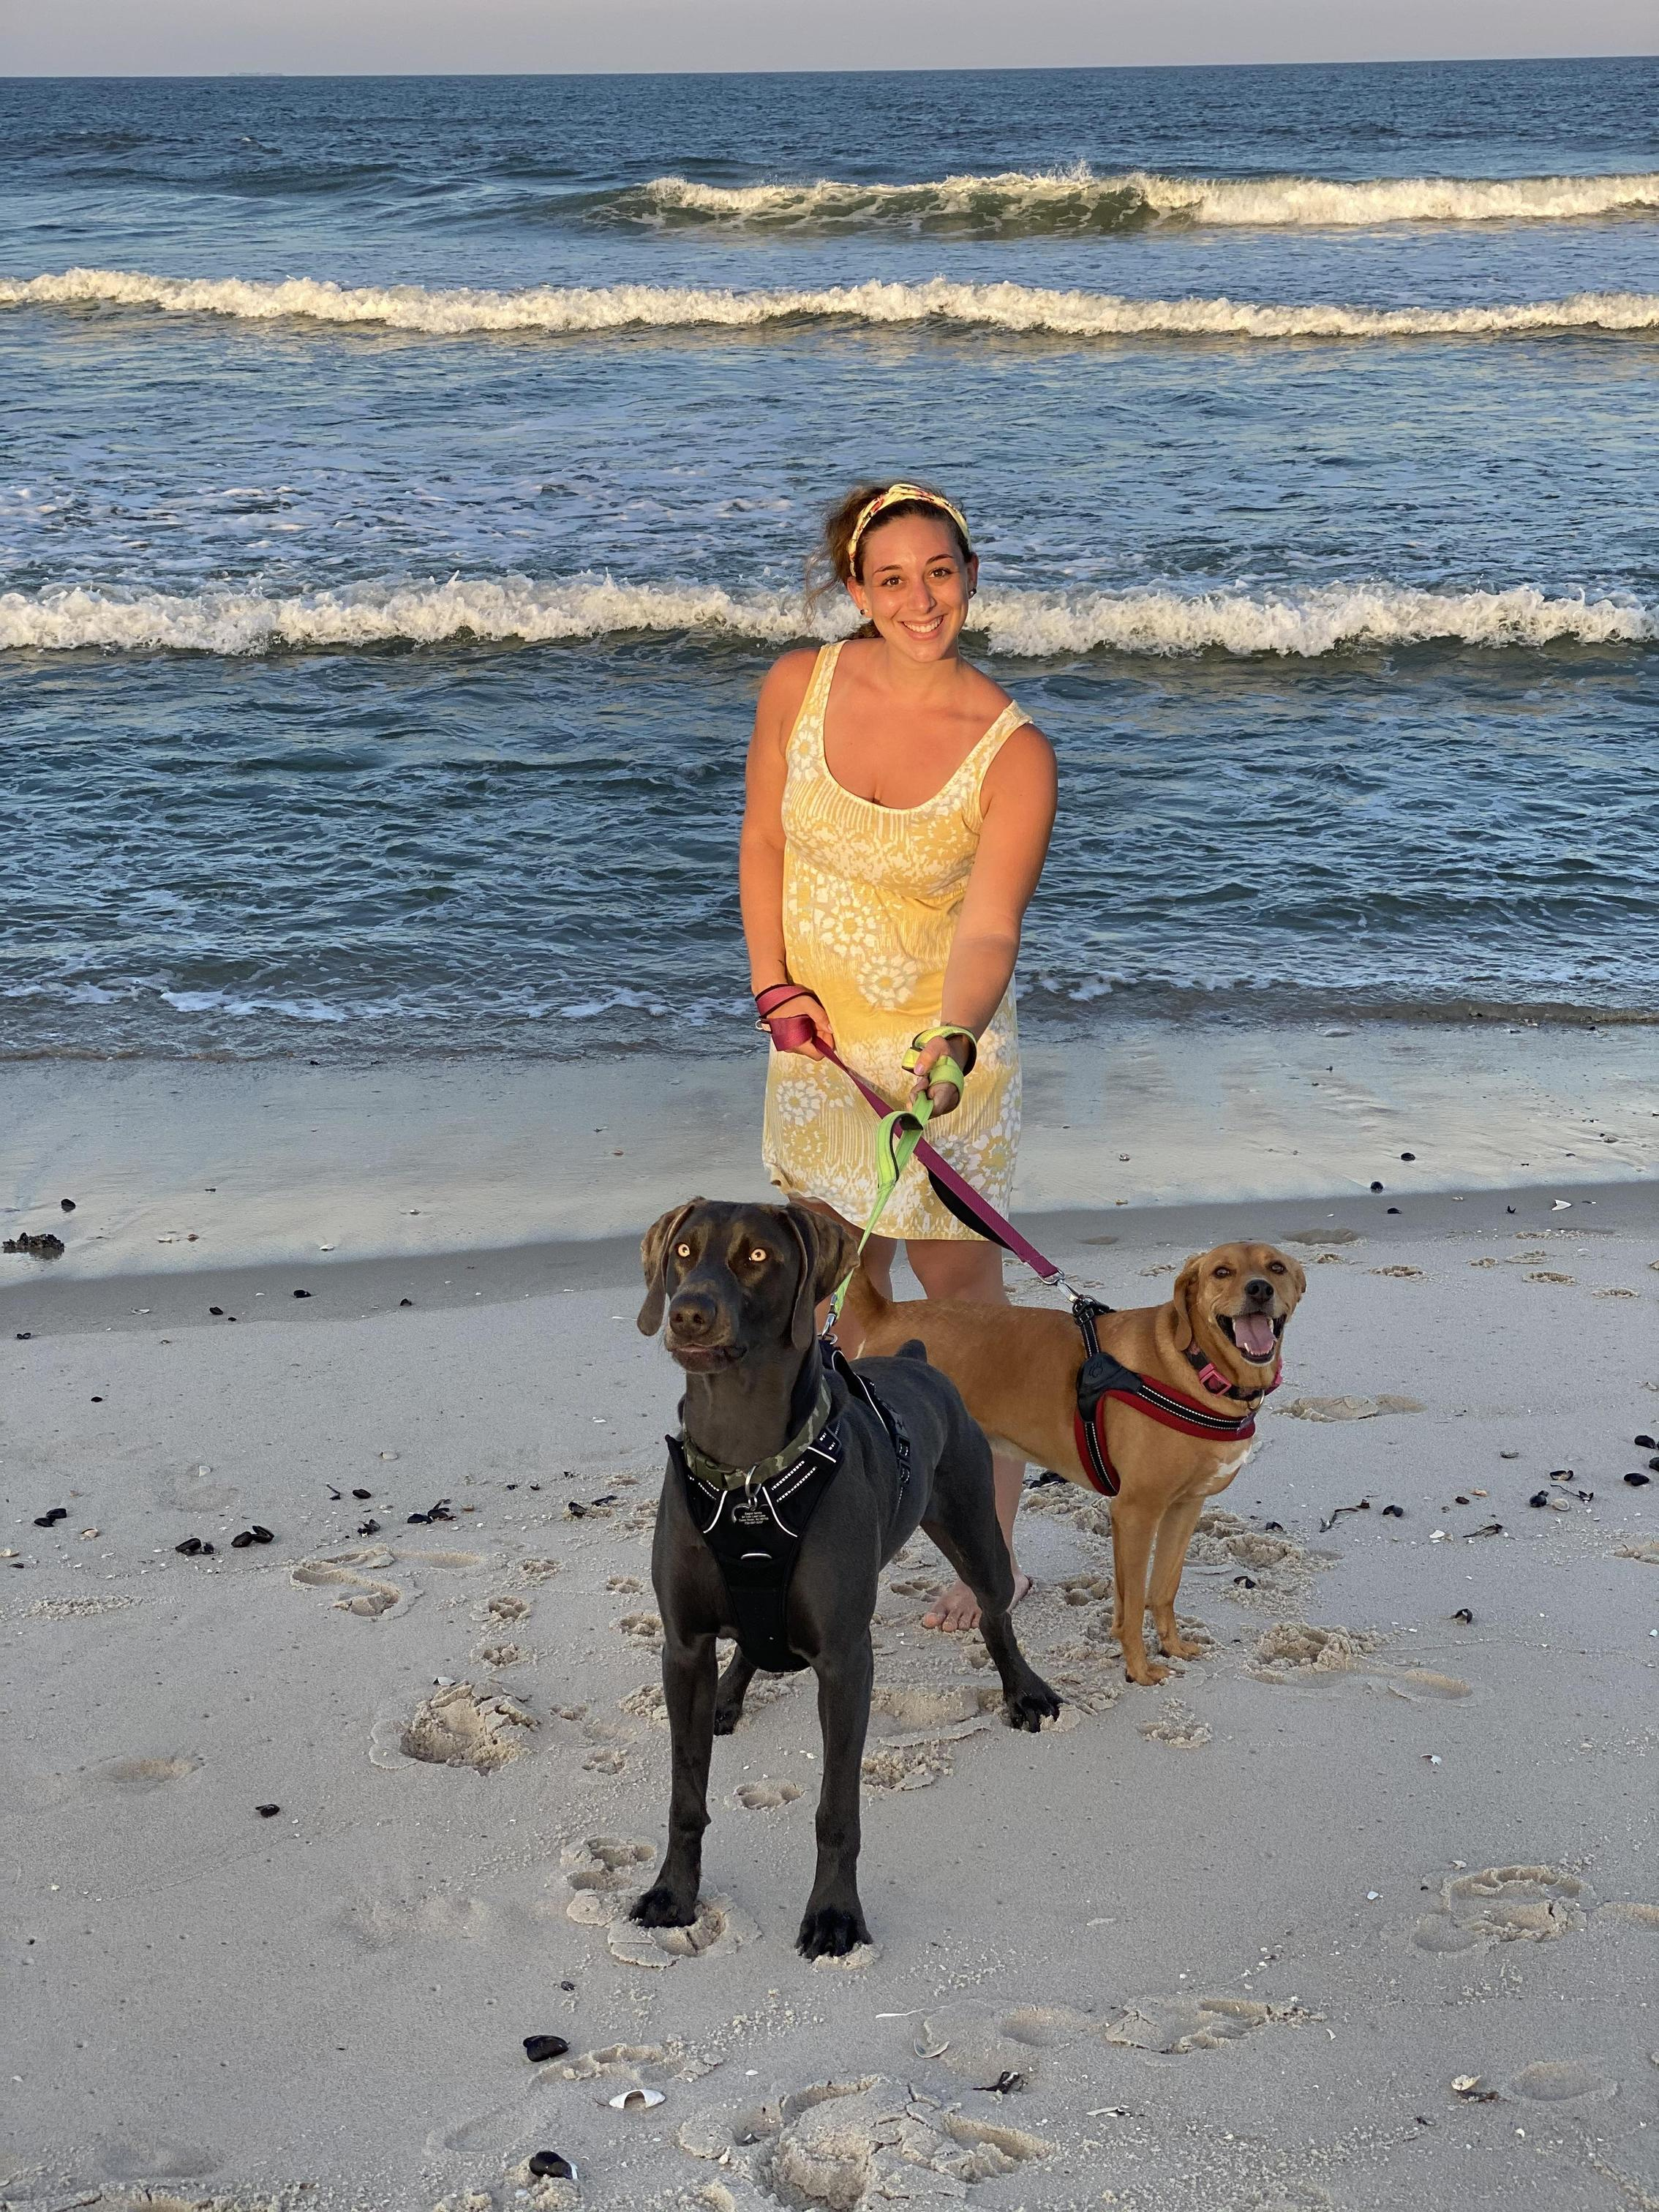 Here's a picture of me with my two dogs!